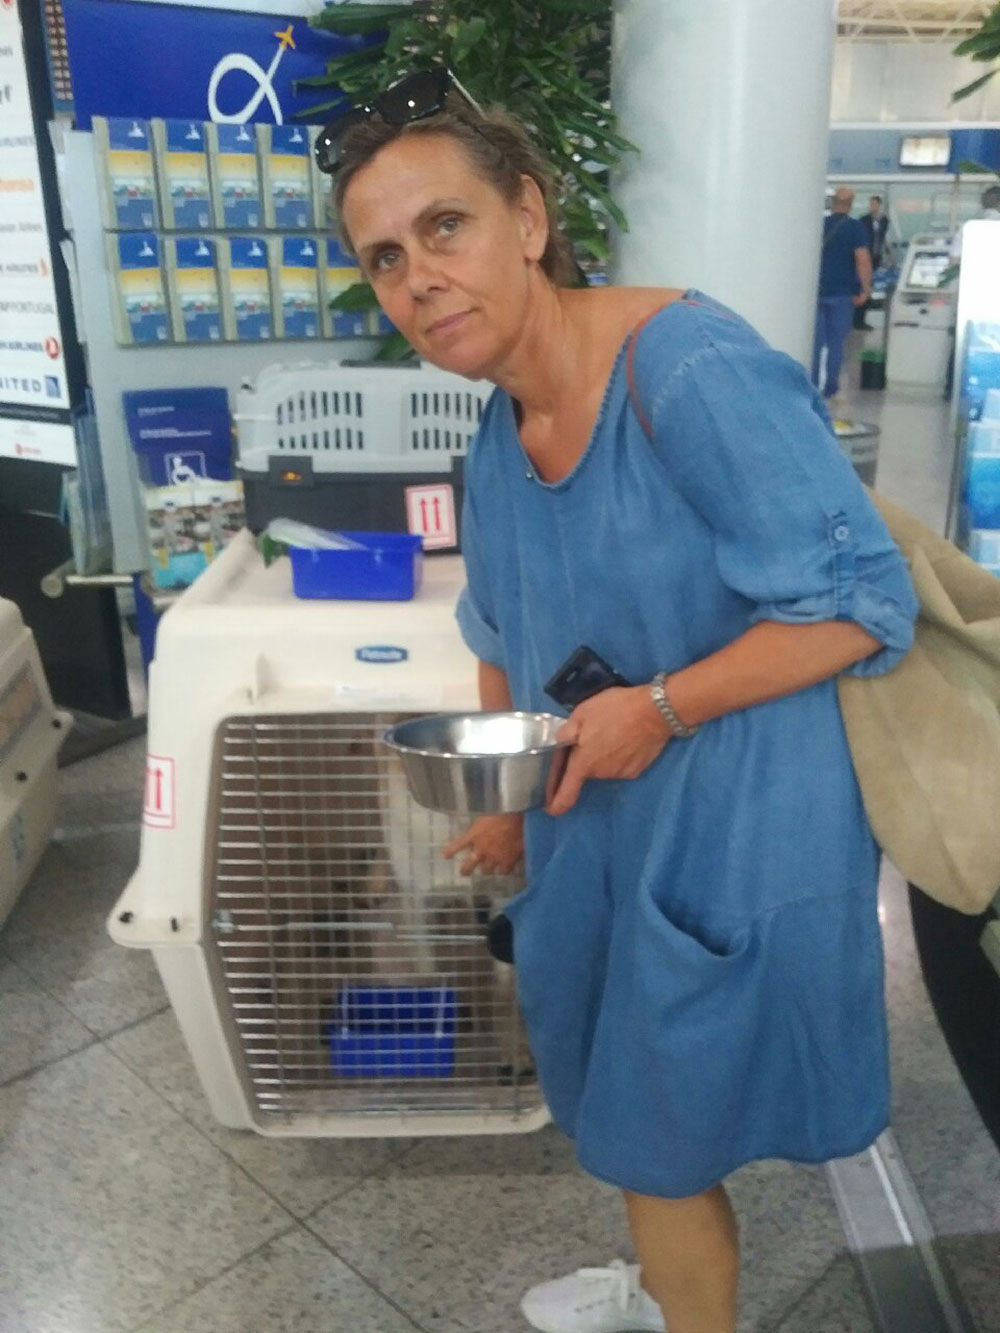 Romeo was brought to the airport by Maria, a friend of Romeo's owners Ionna and Ele